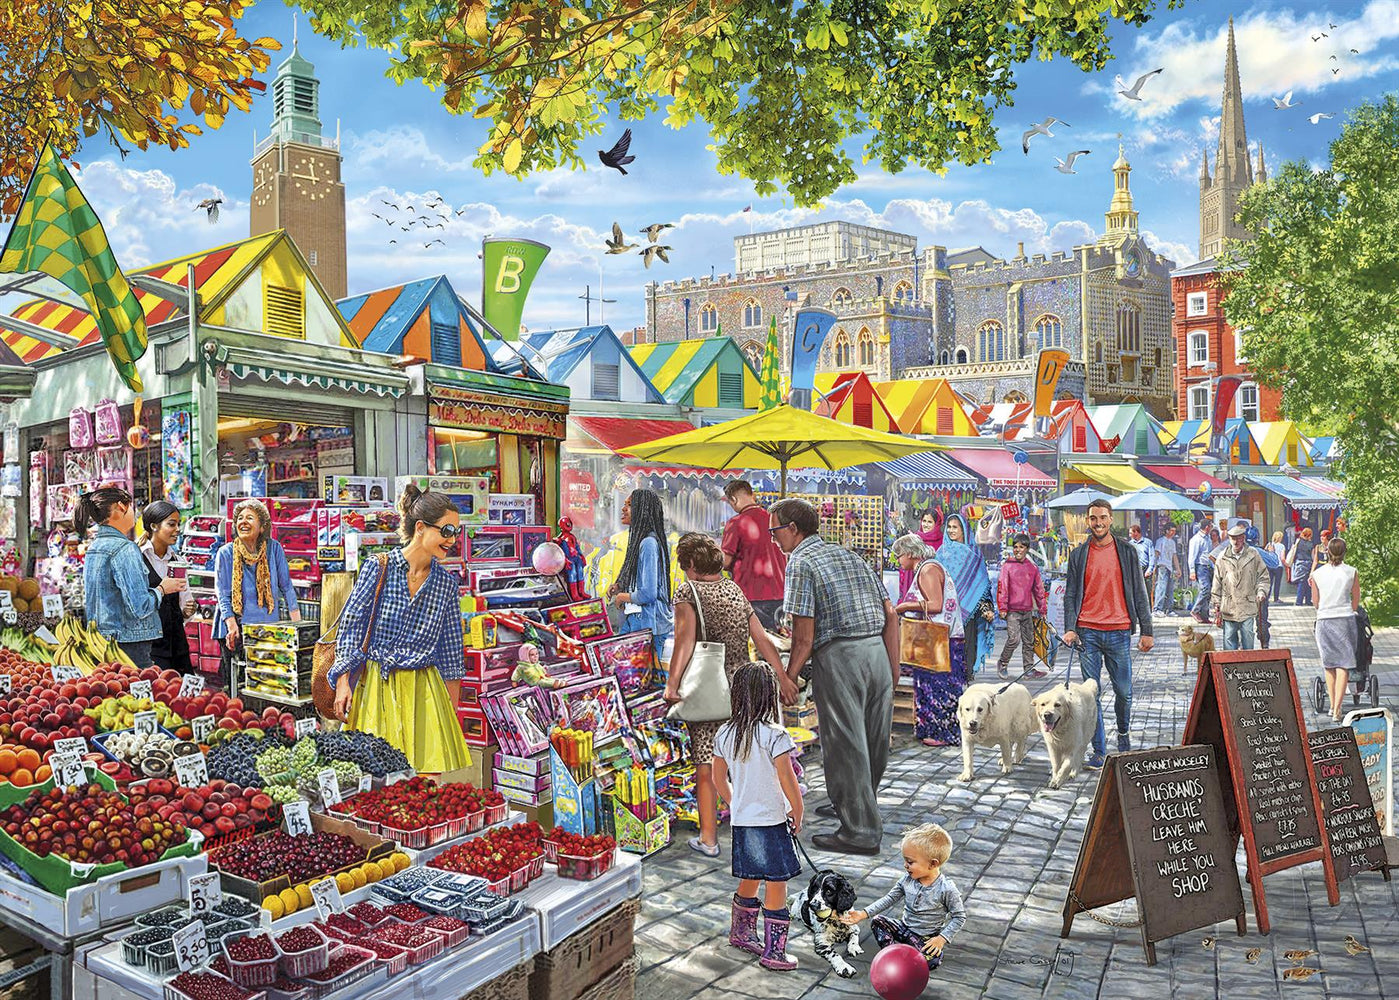 Market Day, Norwich 1000 Piece Jigsaw Puzzle